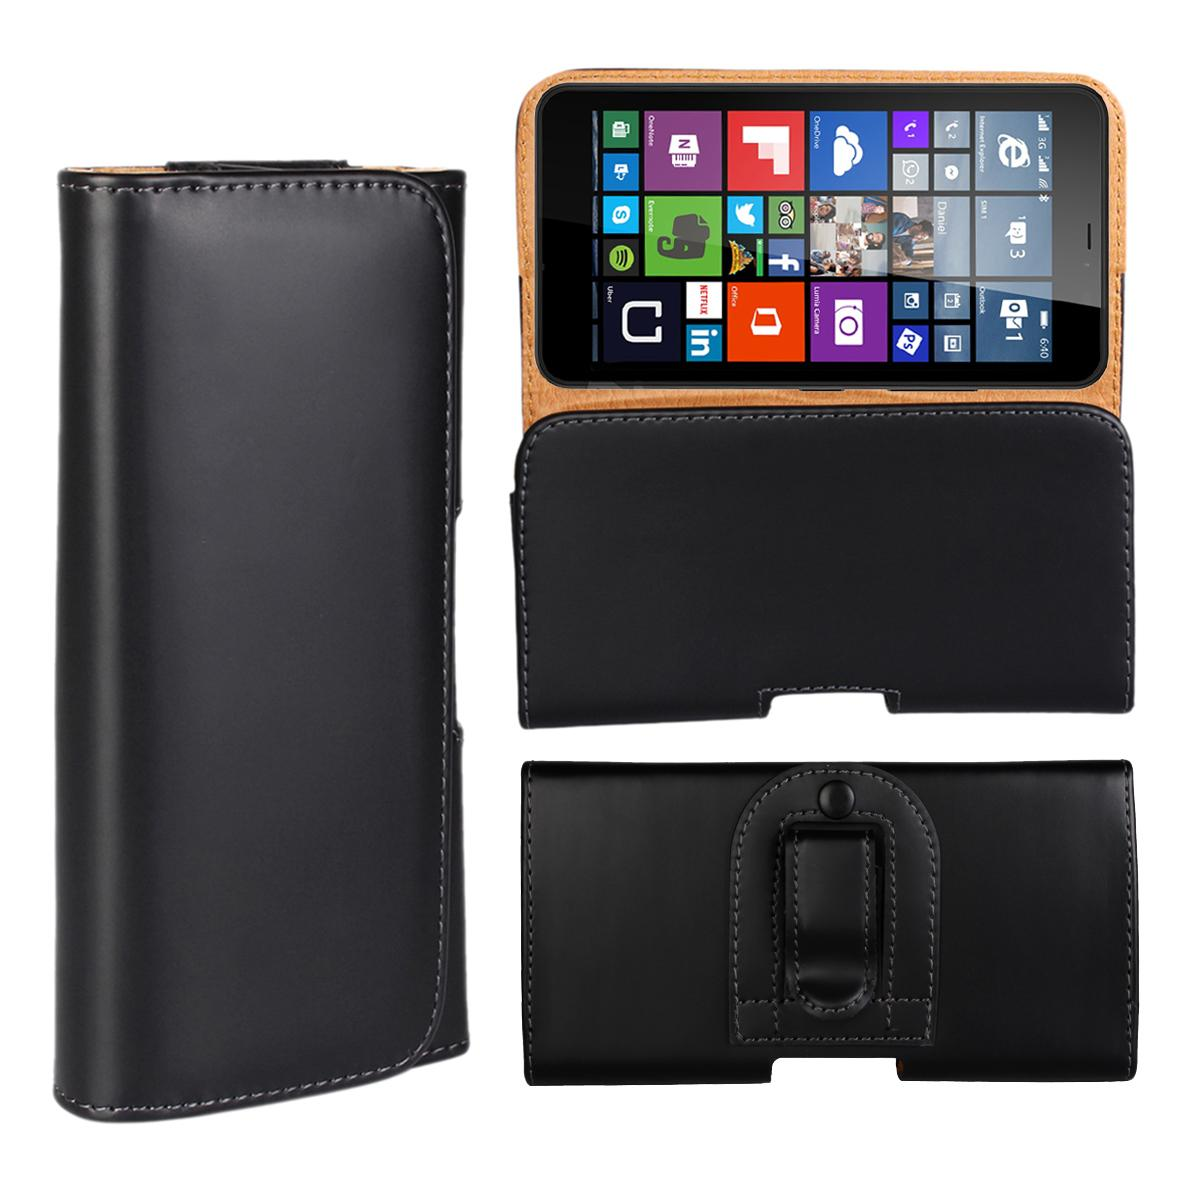 Wholesale Newest Waist Case Holster PU Leather Belt Clip Pouch Cover Case For Microsoft Lumia 640 XL For Nokia Lumia 640 XL Phone Bag Free